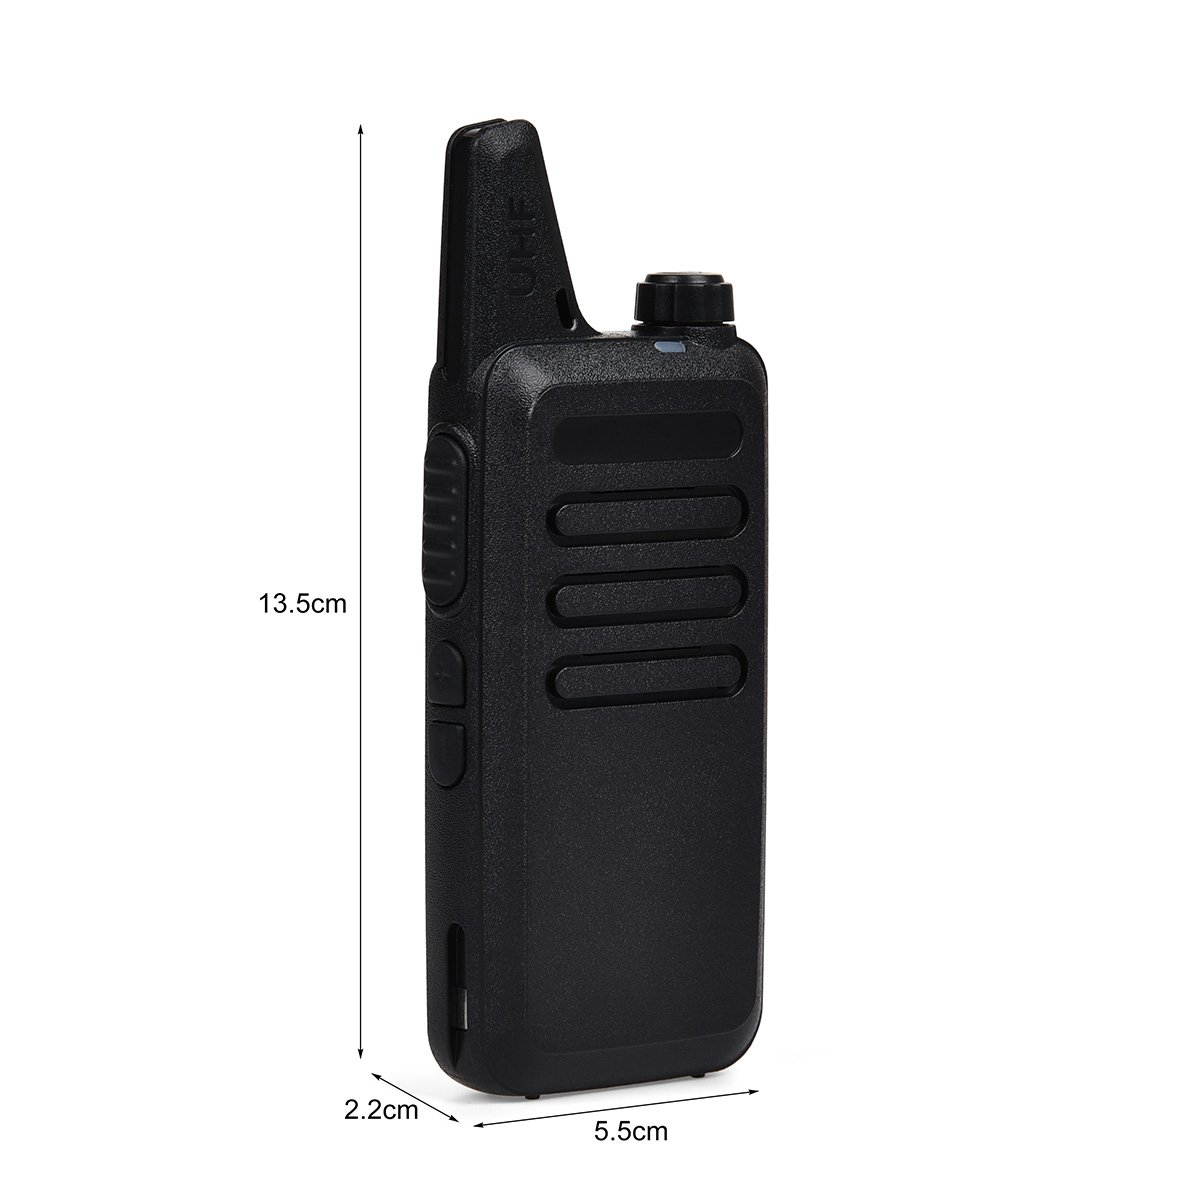 Swiftion Rechargeable Walkie Talkies for Hunting Long Range 2 Way Radio Walky Talky Rechargable Professional interphone for Trave for Police 16 Channel 2 Way Radios with Charger (Pack of 2) by Swiftion (Image #4)